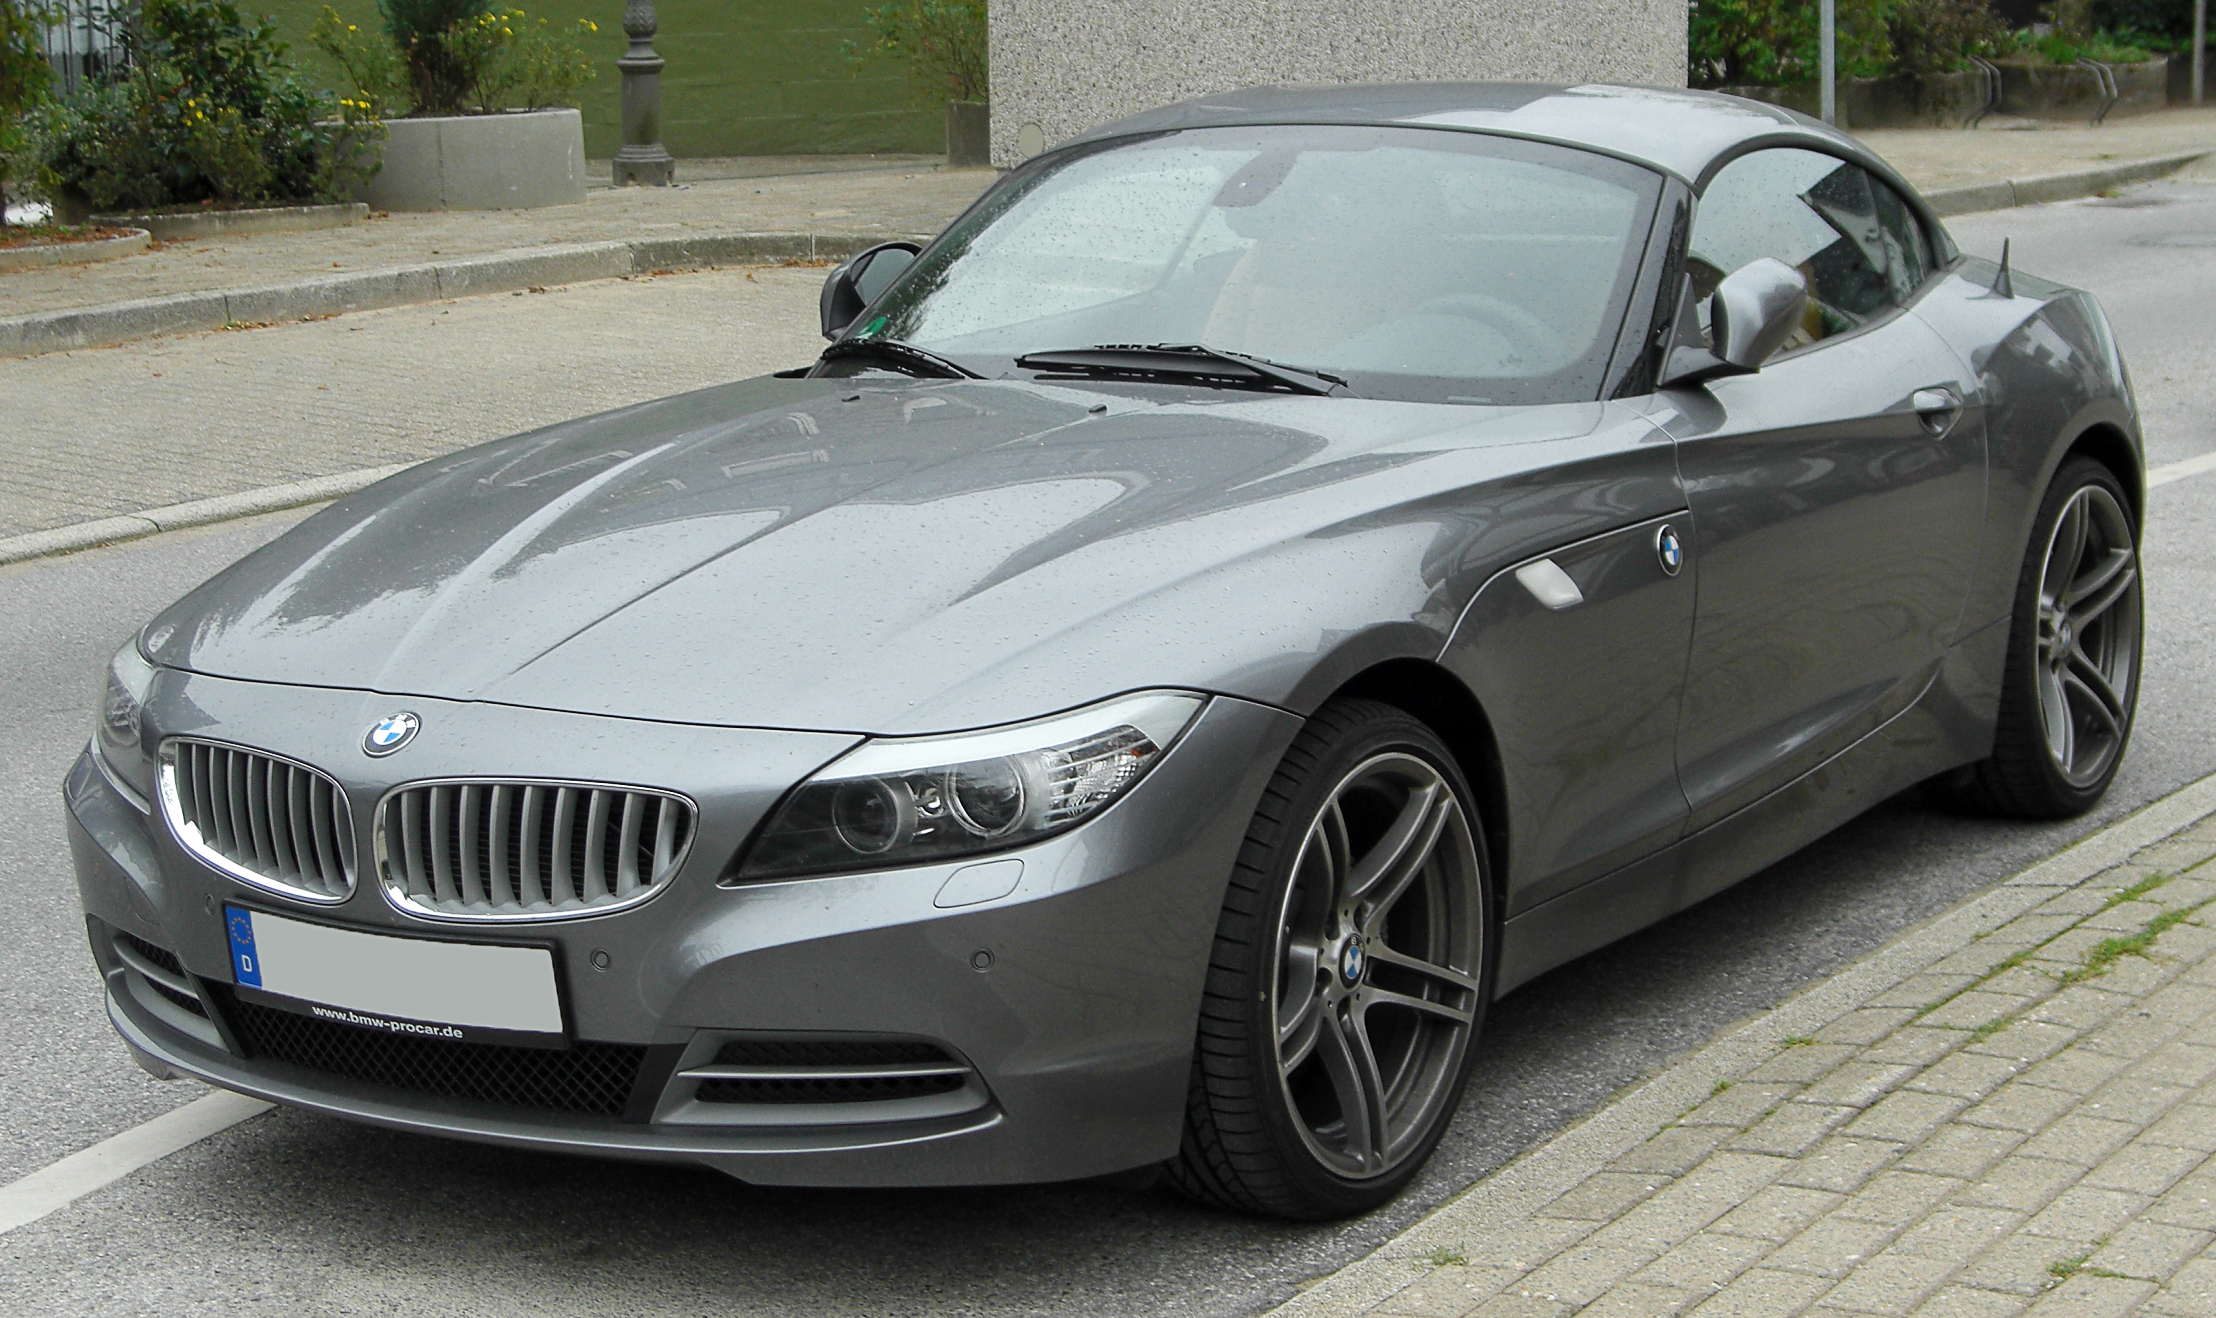 BMW Z4 (E89) - Wikipedia, the free encyclopedia